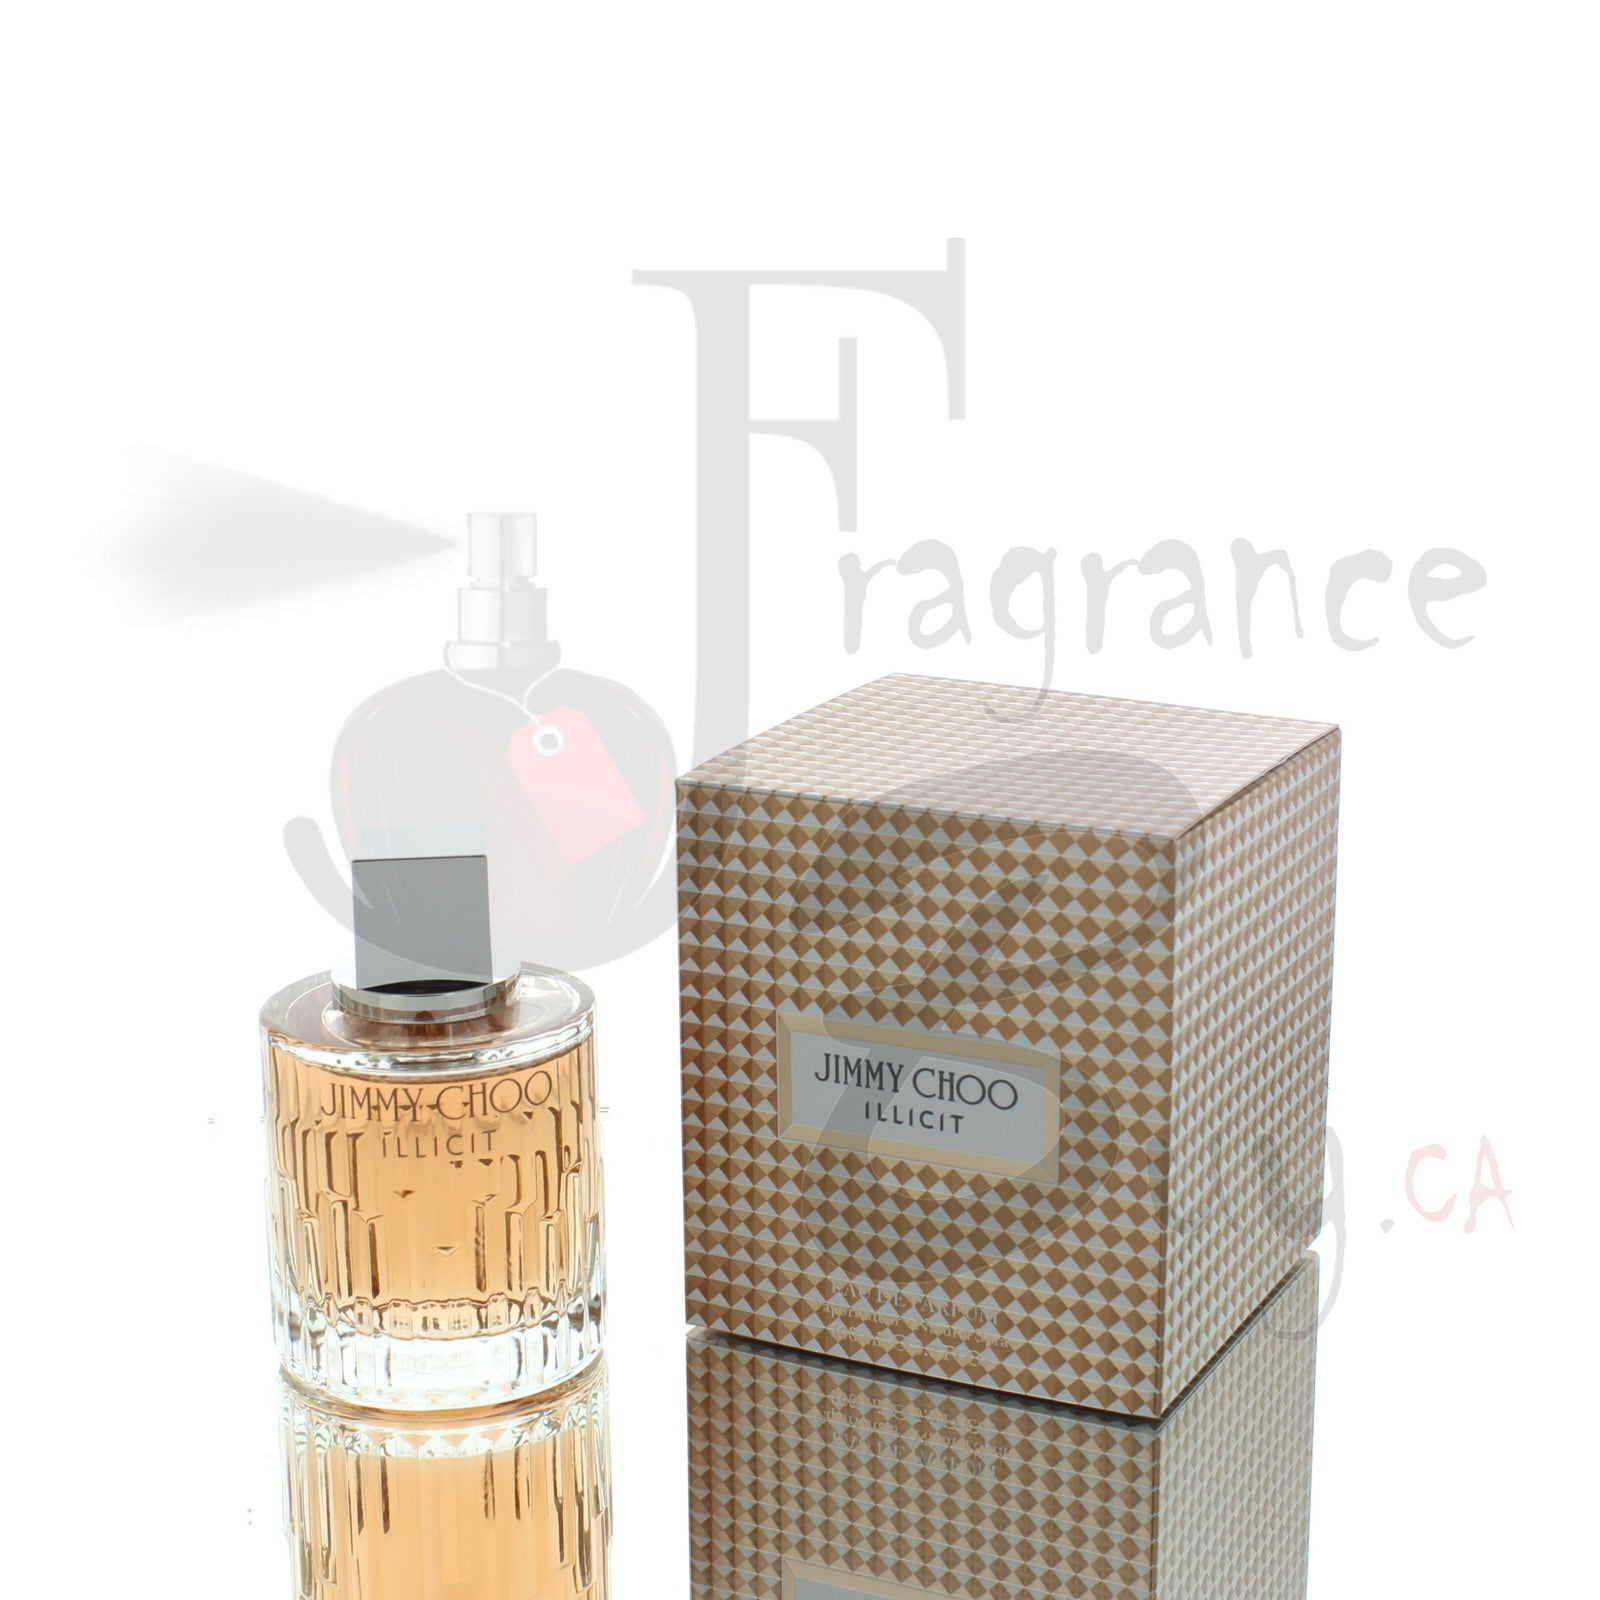 Jimmy Choo Illicit For Woman